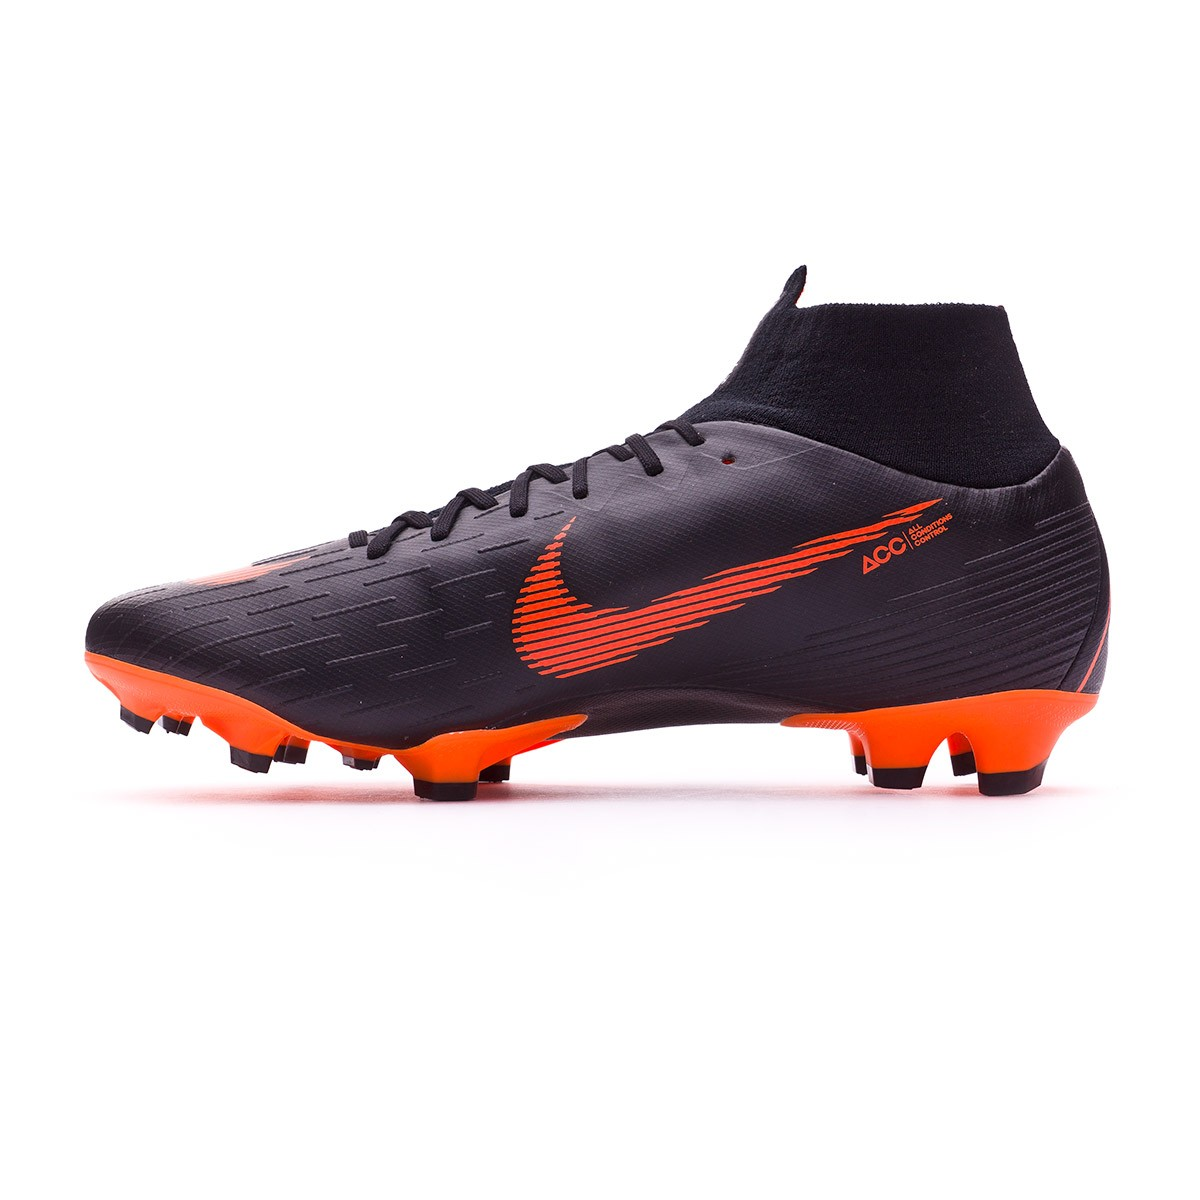 6906f02dd2d7 Football Boots Nike Mercurial Superfly VI Pro FG Black-Total orange-White -  Tienda de fútbol Fútbol Emotion